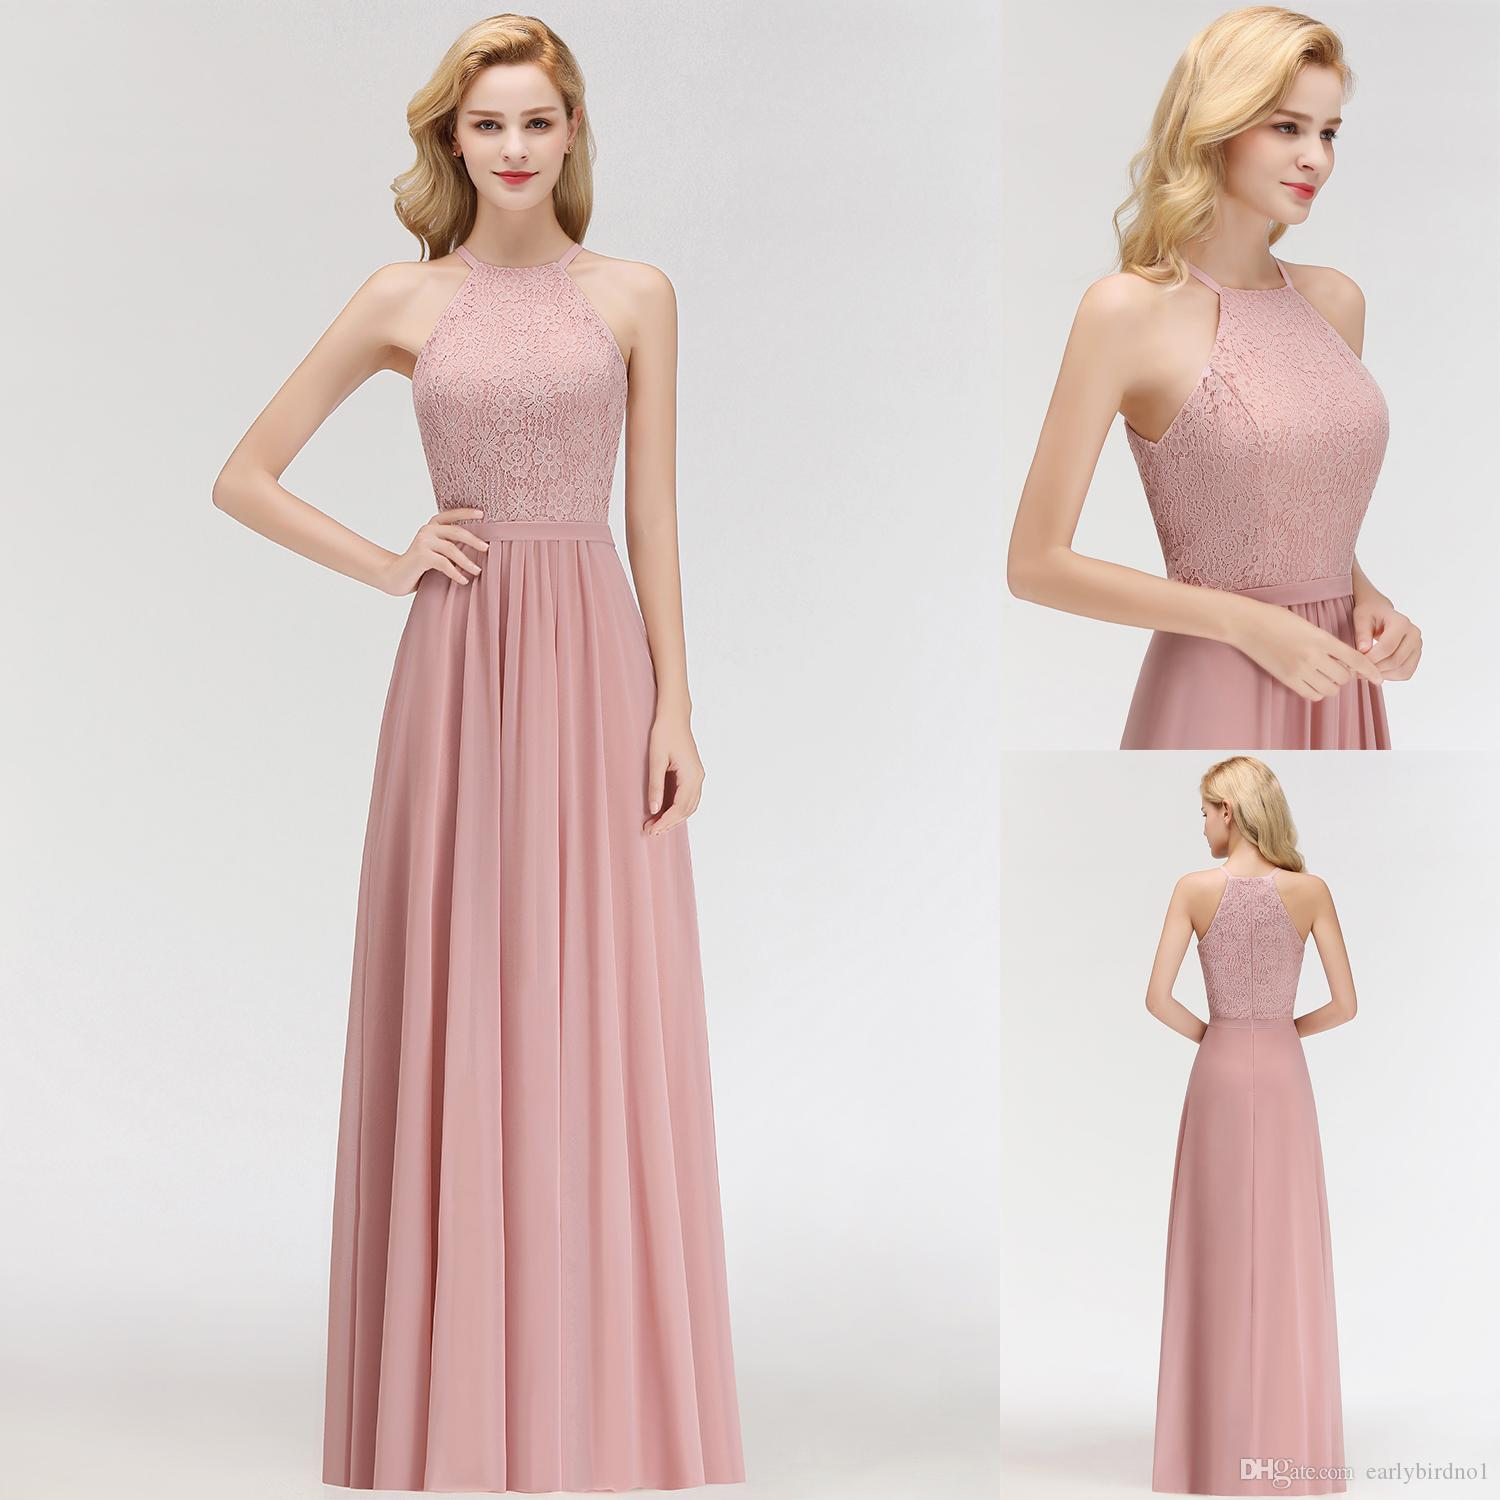 667f529b914 Real Image Cheap Designer Blush Pink Bridesmaid Dresses Sexy Halter Lace  Chiffon Floor Length Maid Of Honor Gown Under  50 CPS1072 Girl Dresses For  Wedding ...